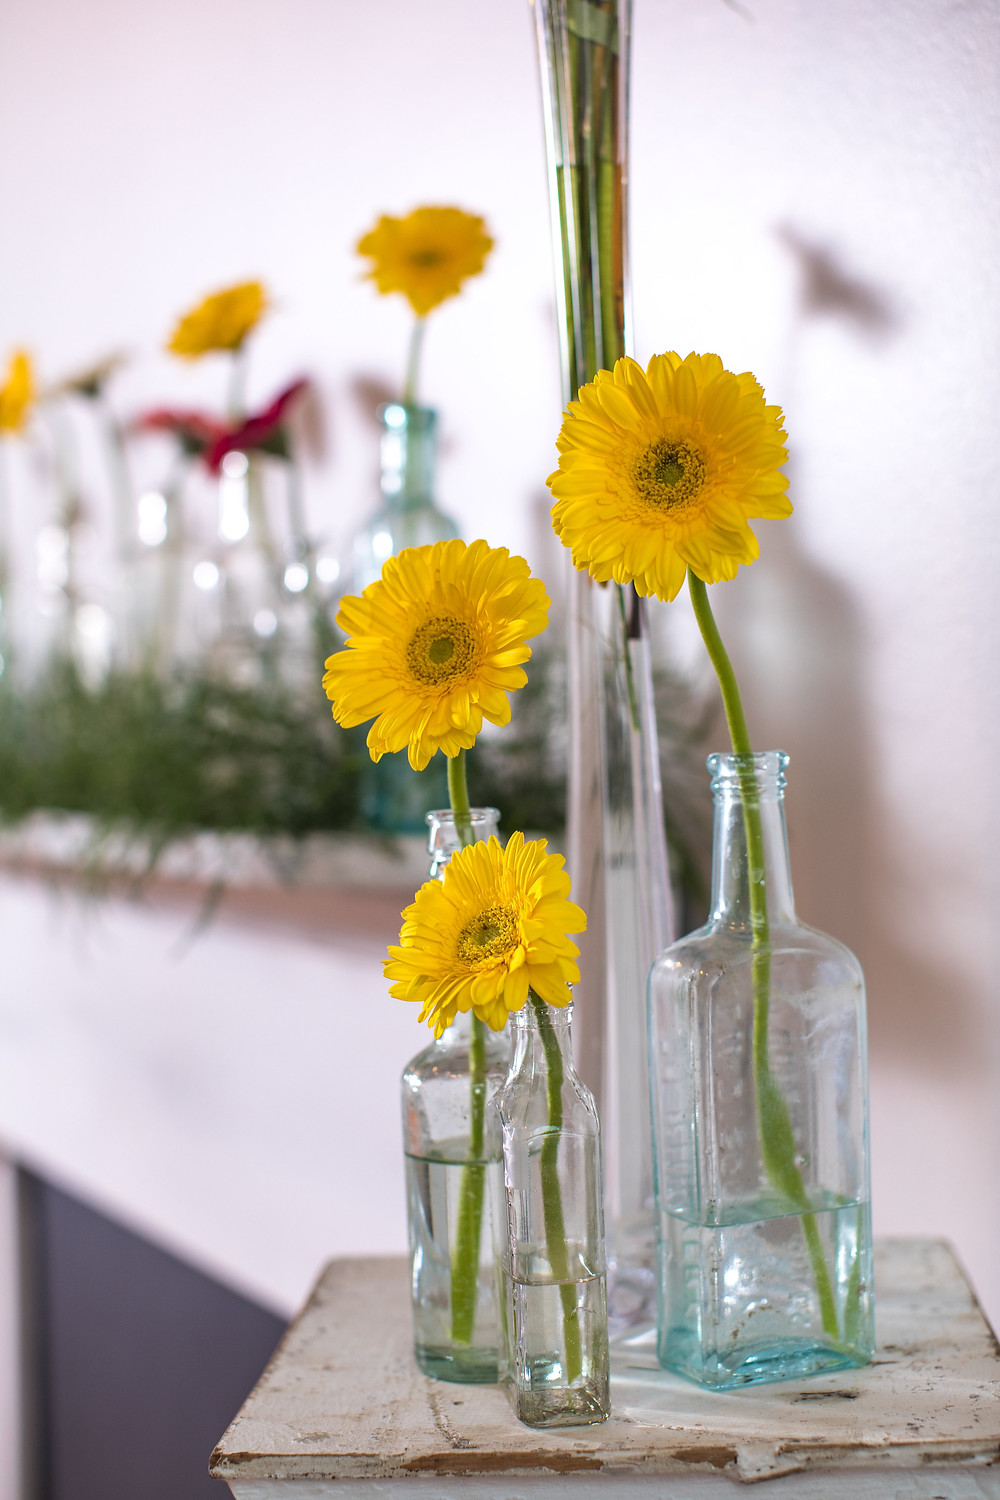 Vintage Mantel designed with vintage bottles holding stems of Gerbera Daisies.